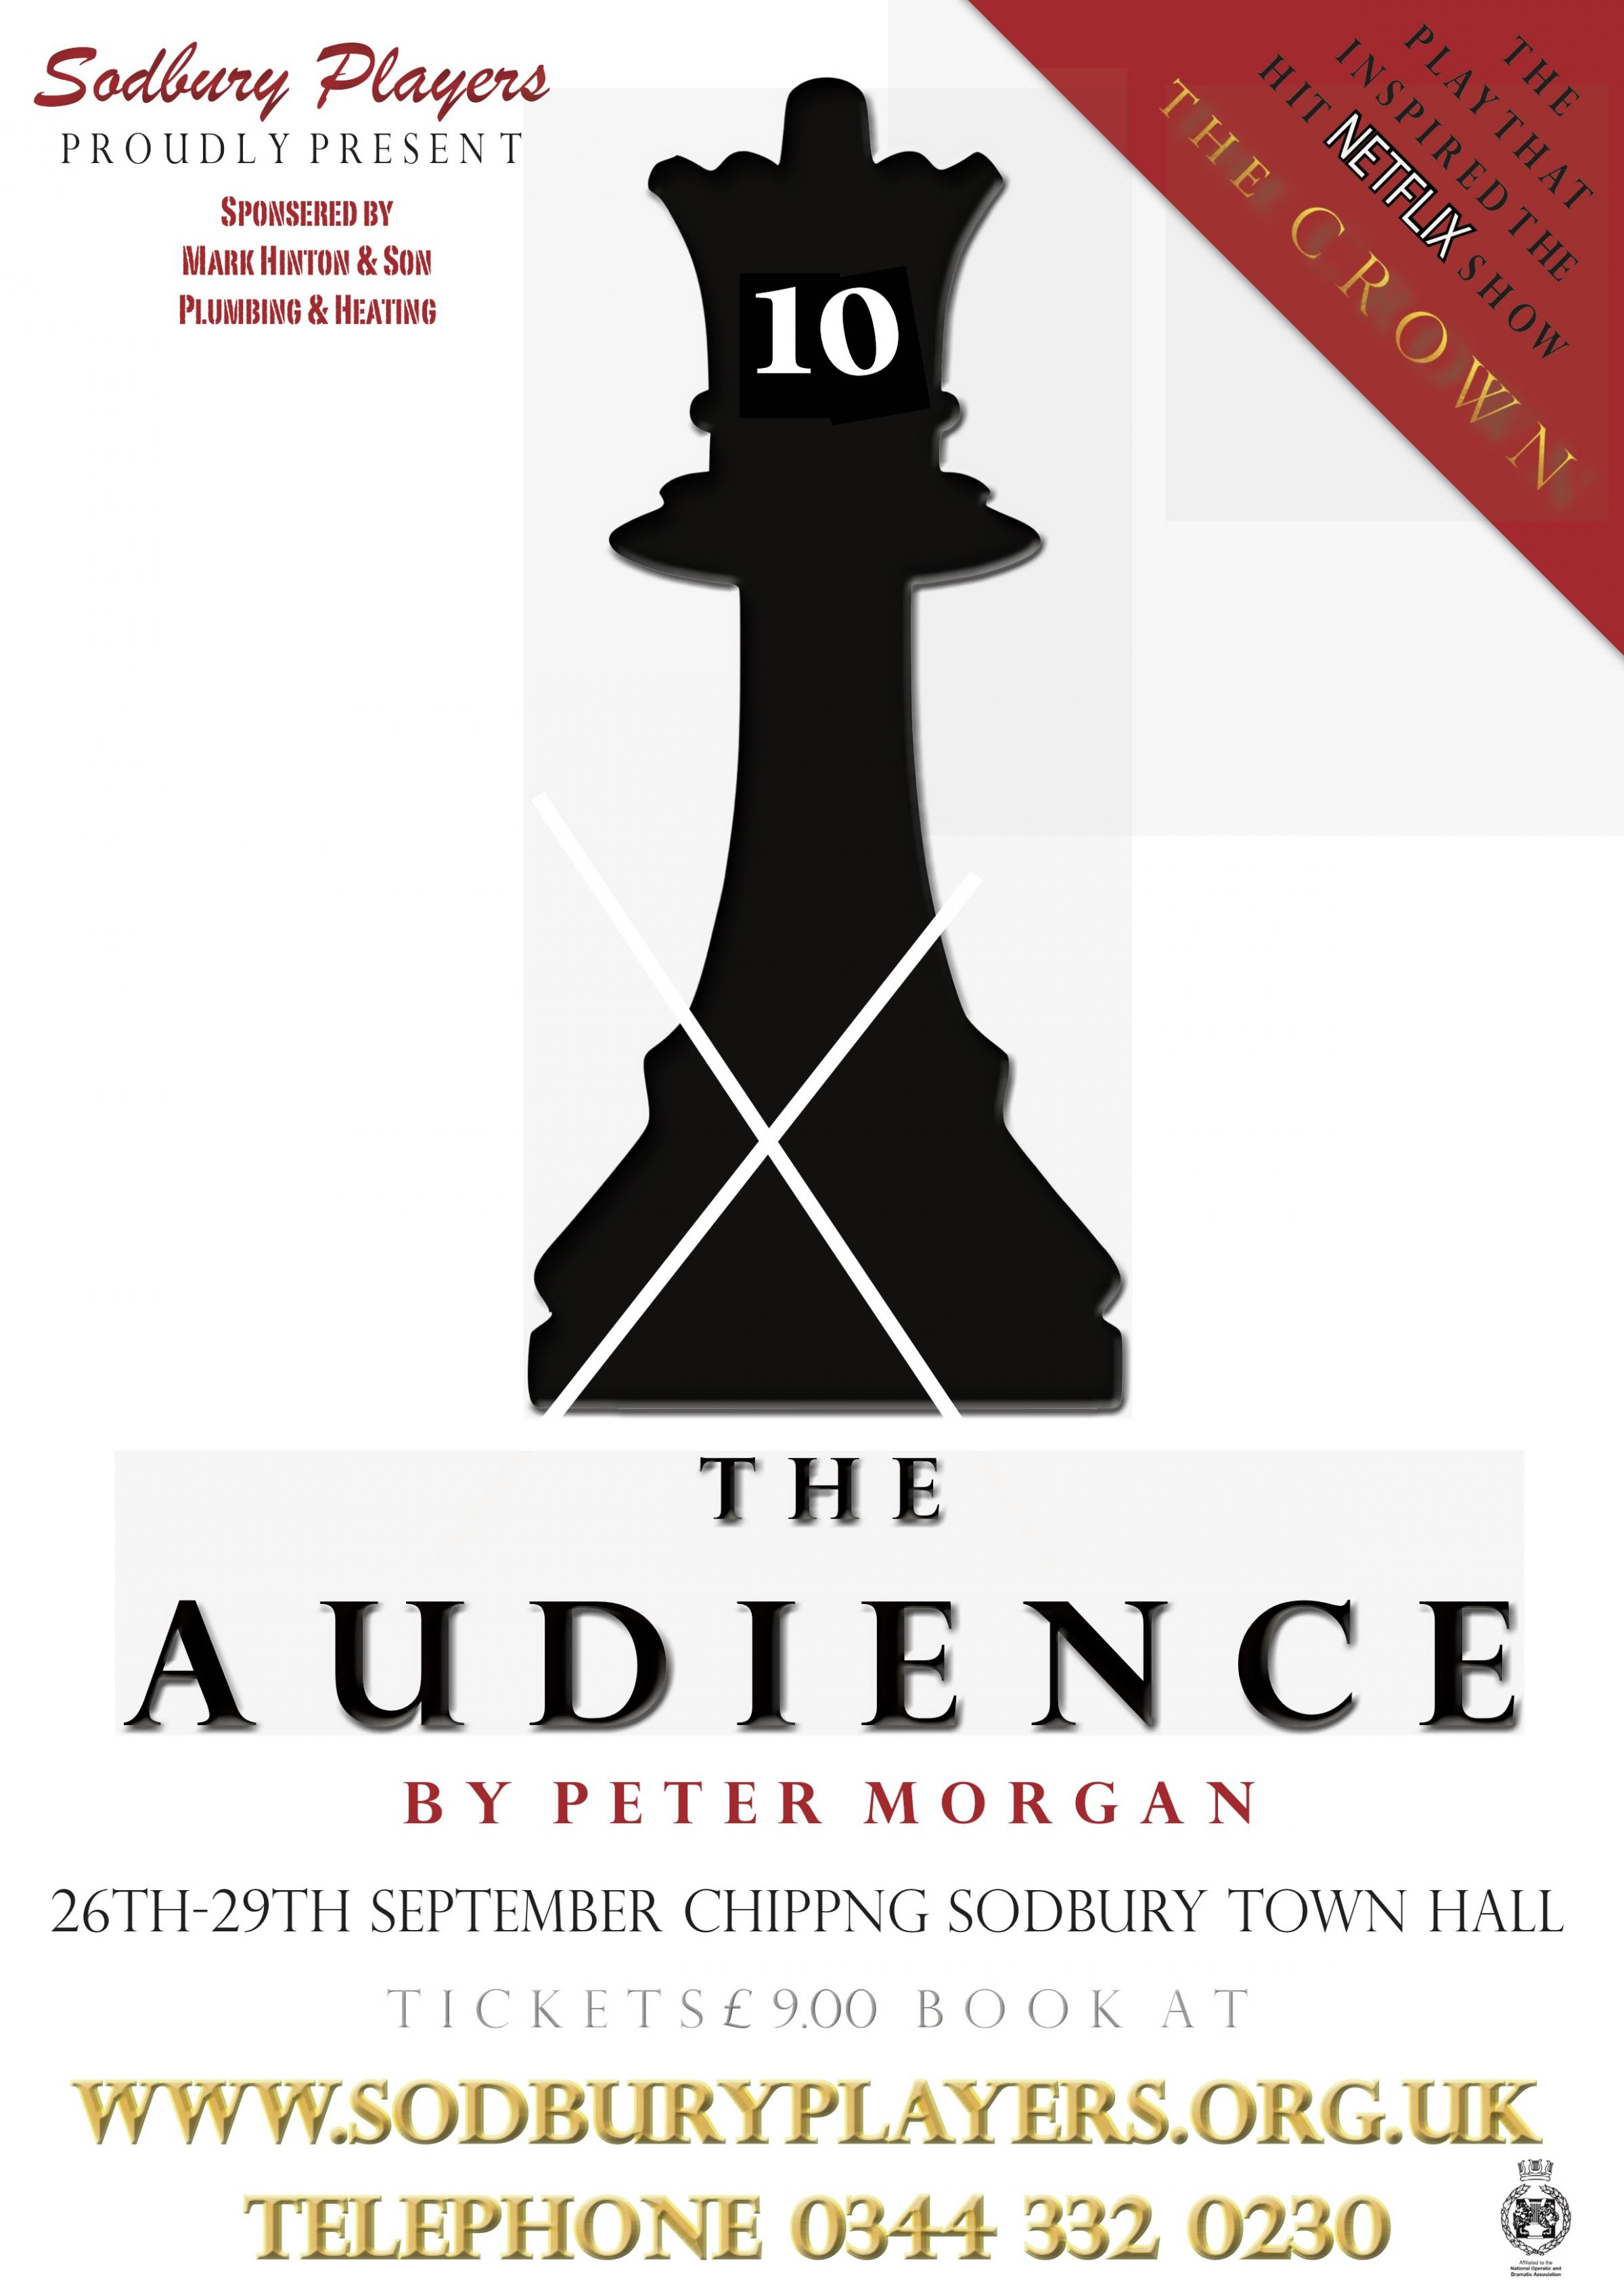 Sodbury Players present The Audience by Peter Morgan